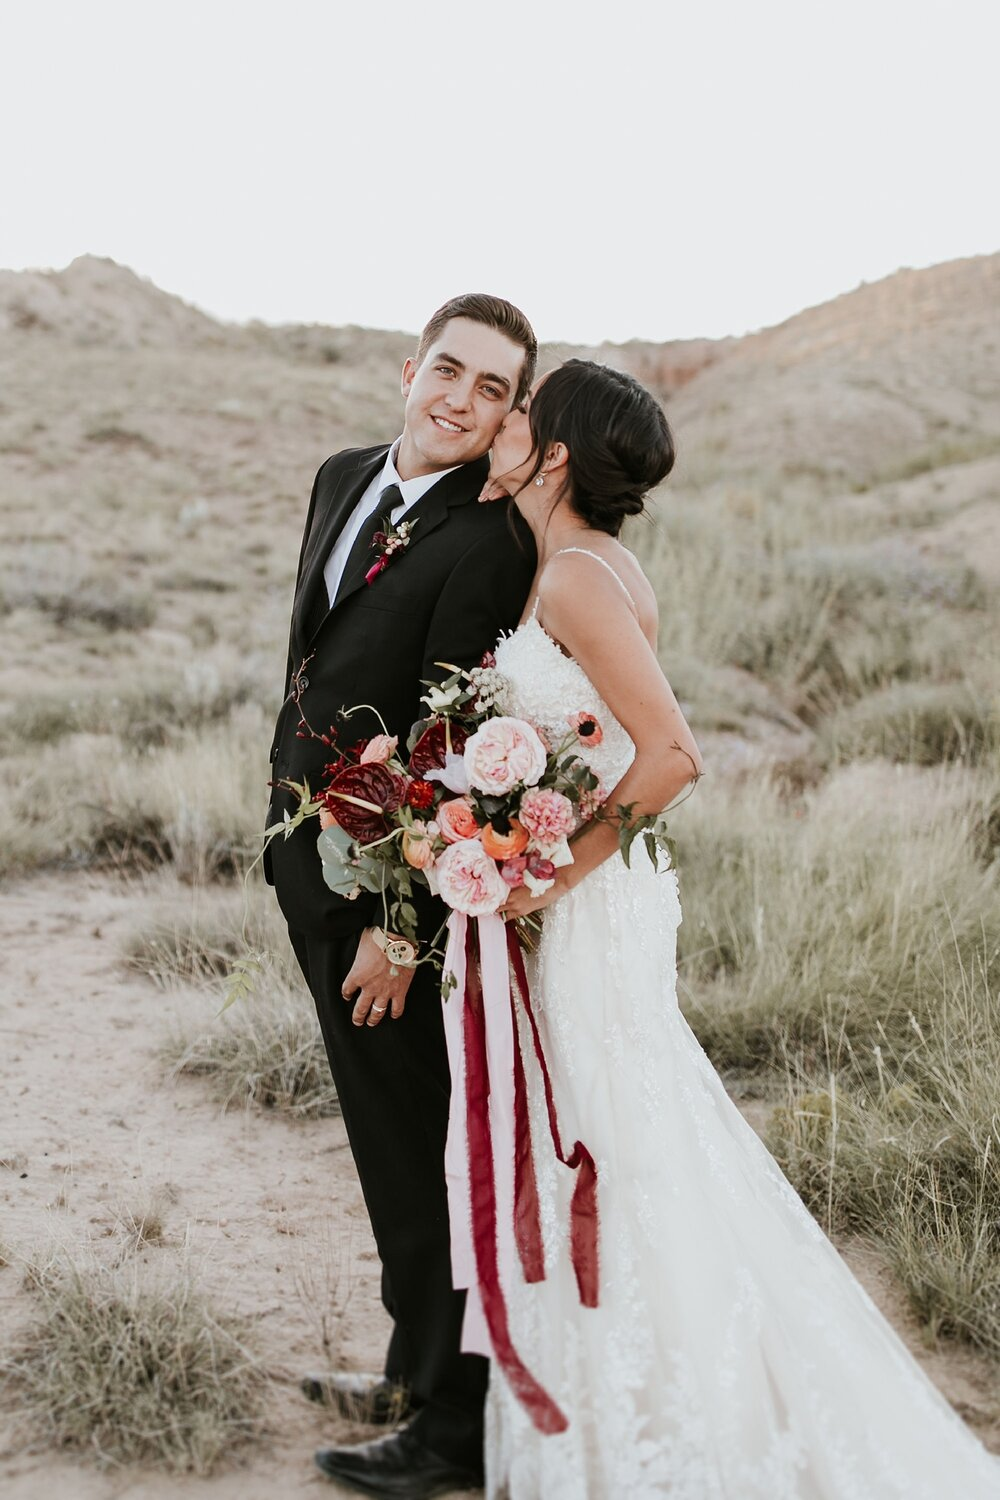 Alicia+lucia+photography+-+albuquerque+wedding+photographer+-+santa+fe+wedding+photography+-+new+mexico+wedding+photographer+-+new+mexico+wedding+-+fall+wedding+-+fall+wedding+florals+-+wedding+florals_0086.jpg